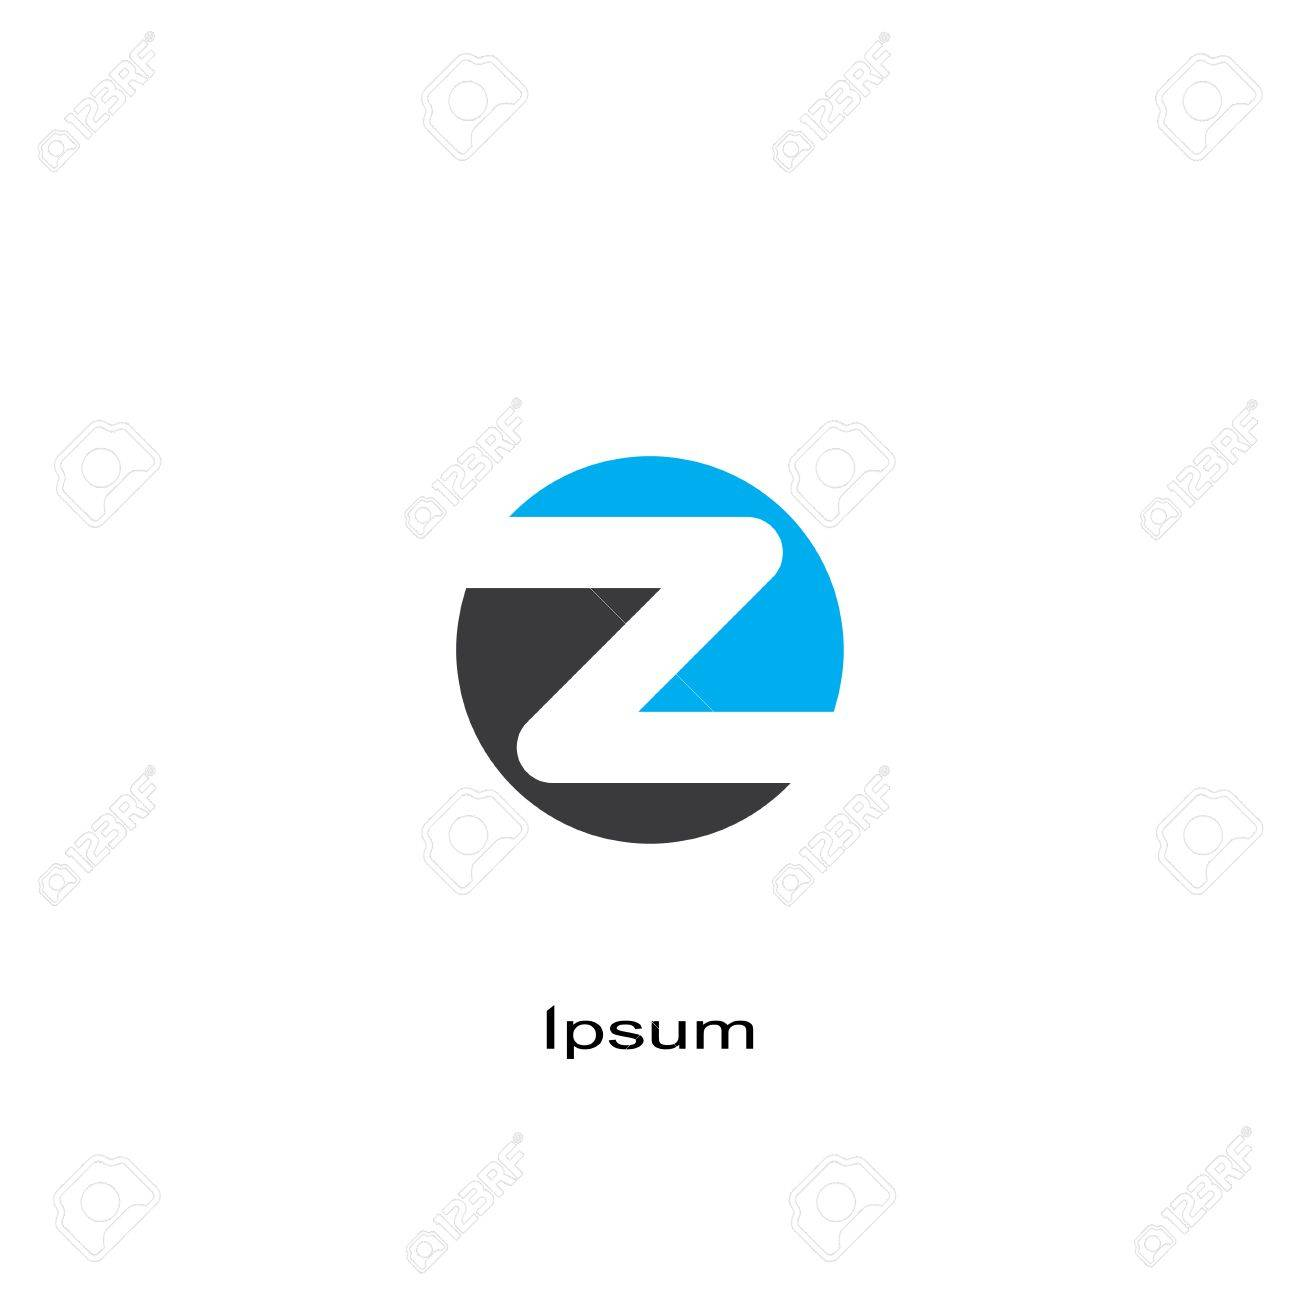 round symbol of letter z template logo design vector eps8